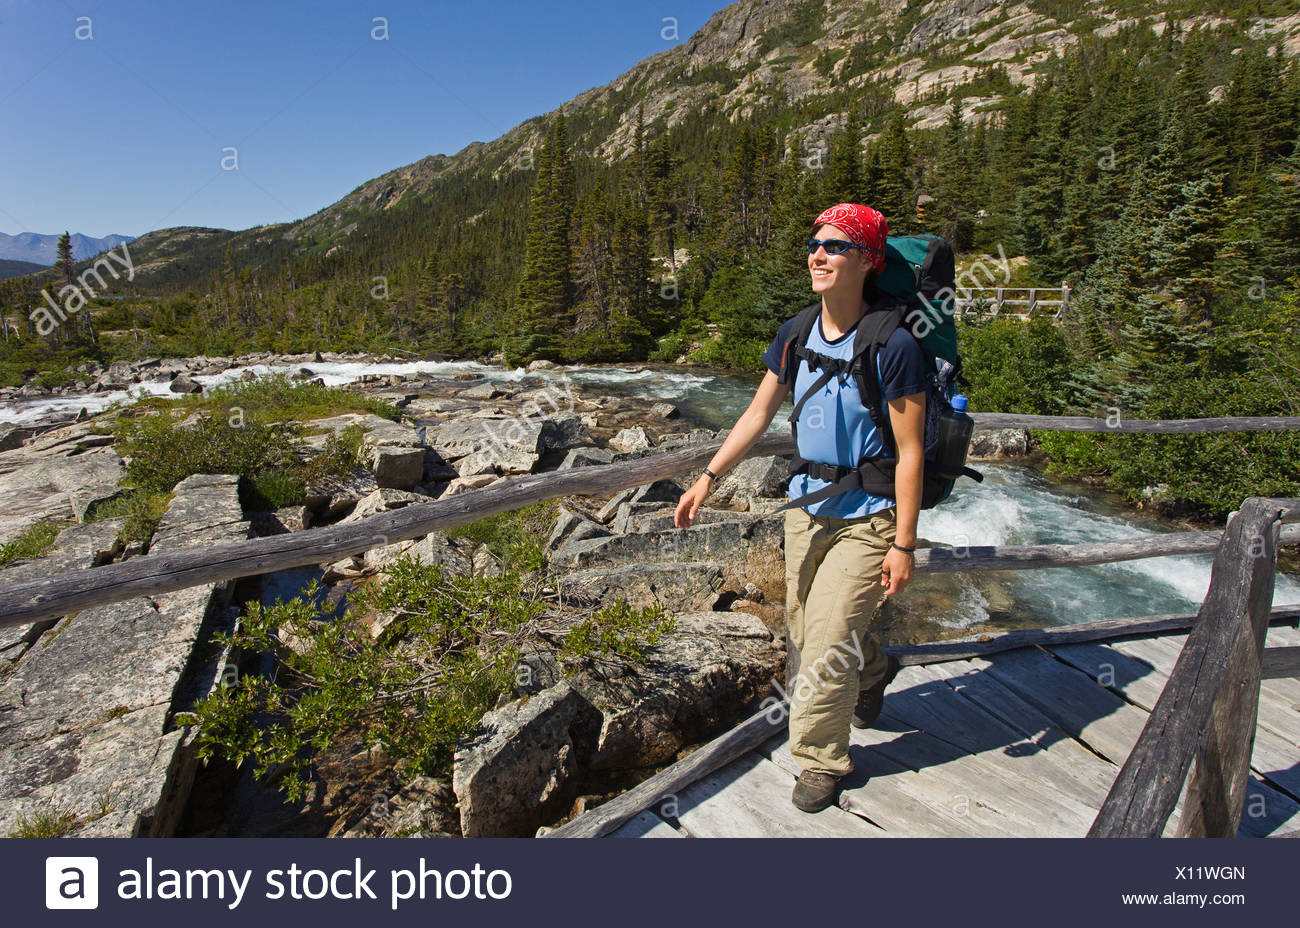 Young woman hiking, backpacking, crossing a wooden bridge, hiker with backpack, historic Chilkoot Pass, Chilkoot Trail - Stock Image